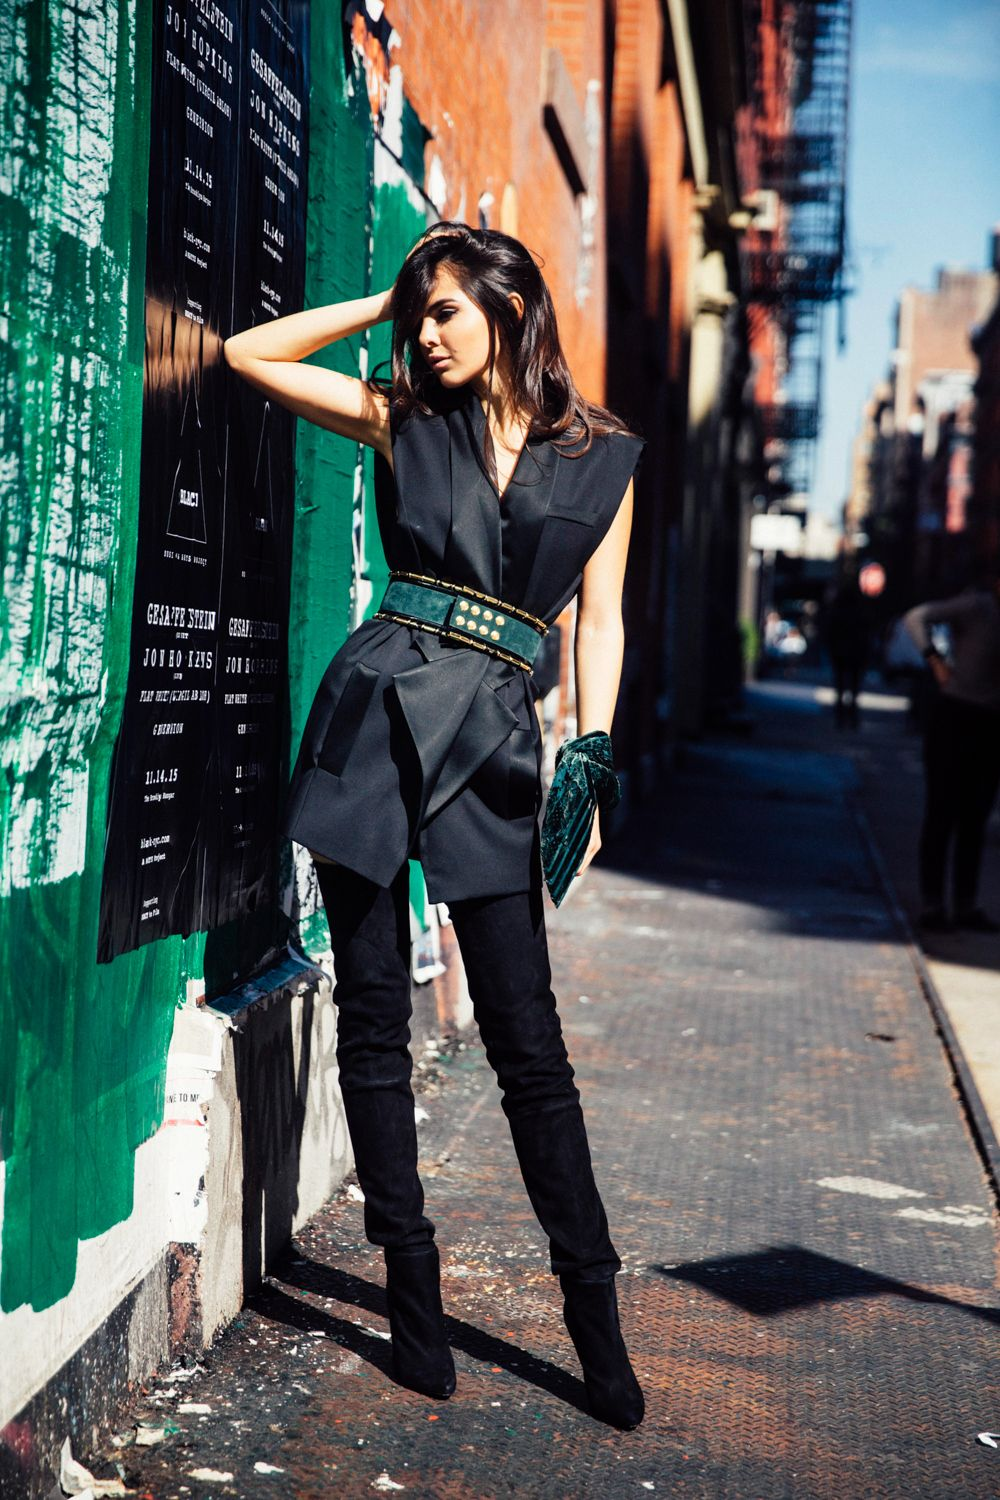 doina-ciobanu-hm-x-balmain-new-york-thigh-high-boots-green-belt 5 ...